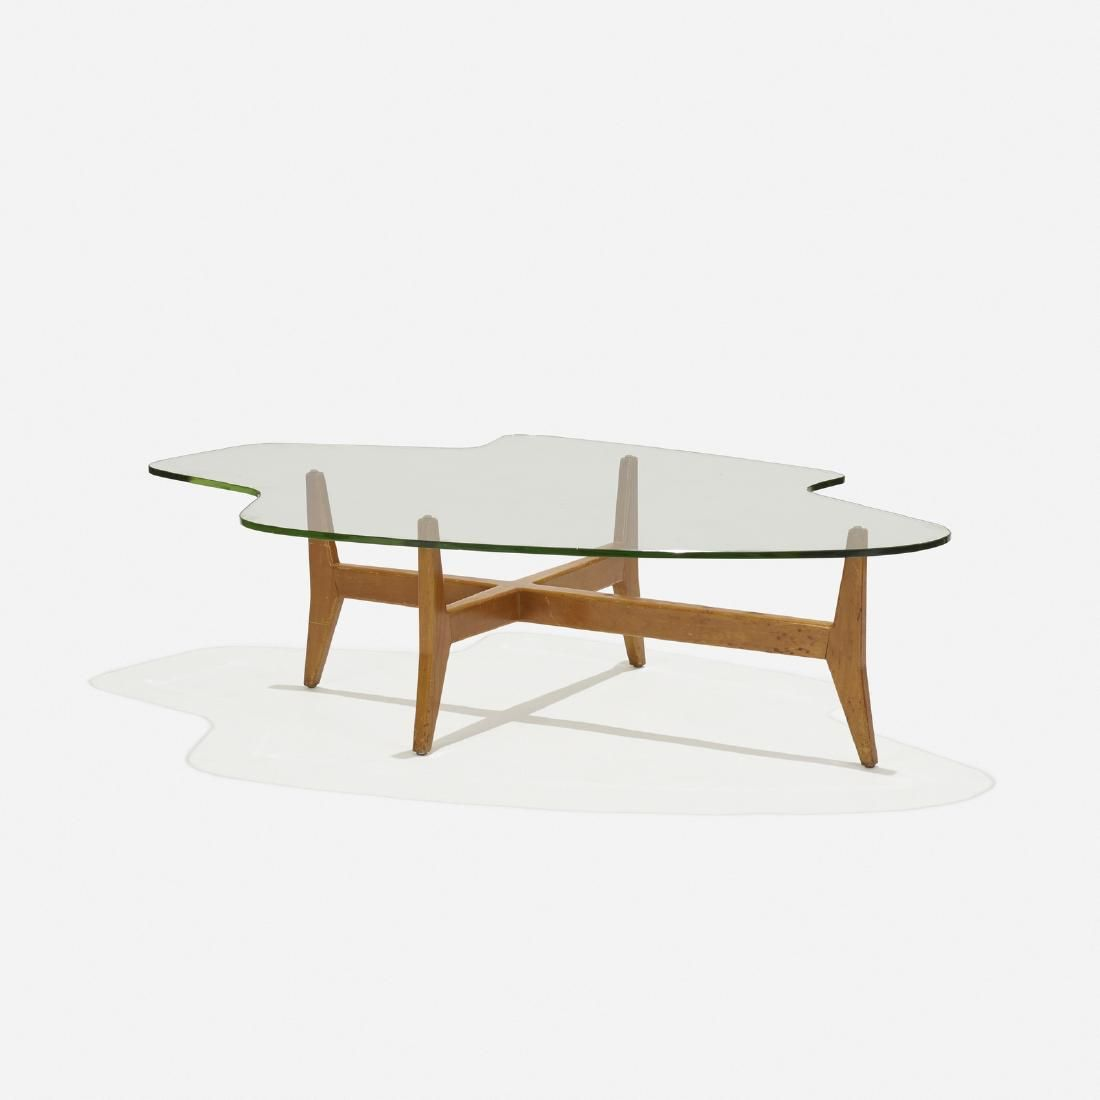 Lot: Jens Risom, Freeshape coffee table, model T-362, Lot Number: 0291, Starting Bid: $2,000, Auctioneer: Wright, Auction: Design of Richard Schultz / American Design, Date: February 17th, 2017 EST